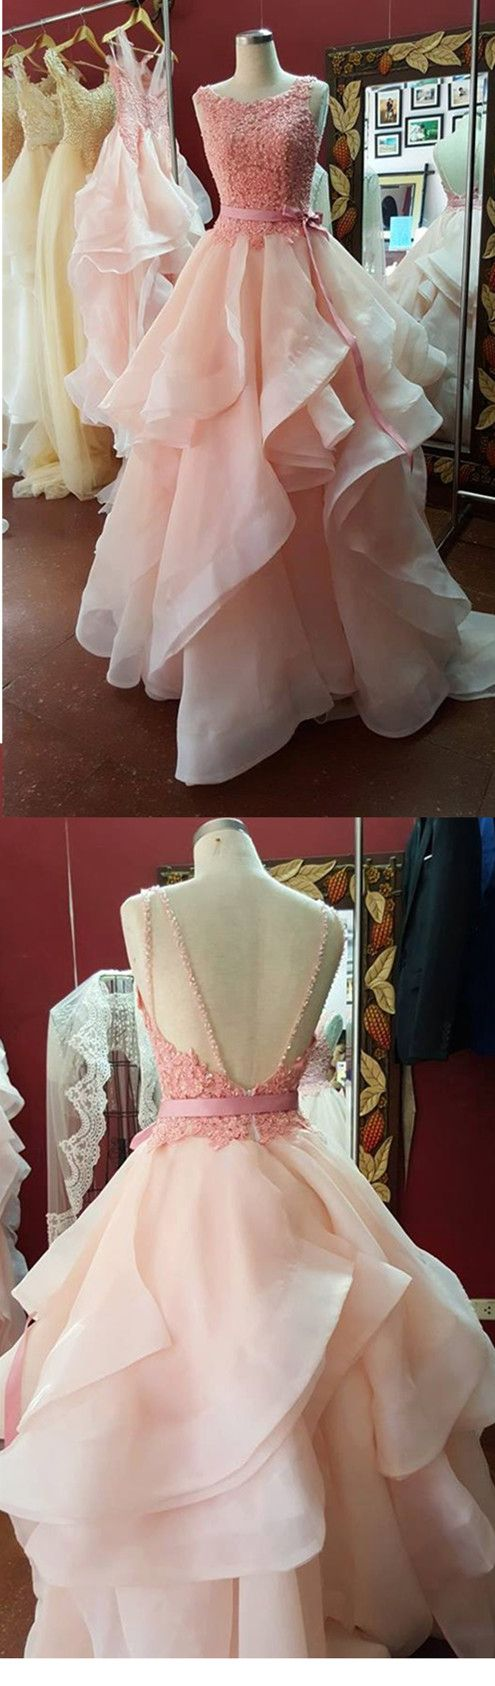 Pastel Pink Primrose Wedding Dress / Bridal Gown/ Bridal dress / Prom dress / Formal dress,backless prom dresses,pink evening dresses, wedding dresses open back, bridal dresses